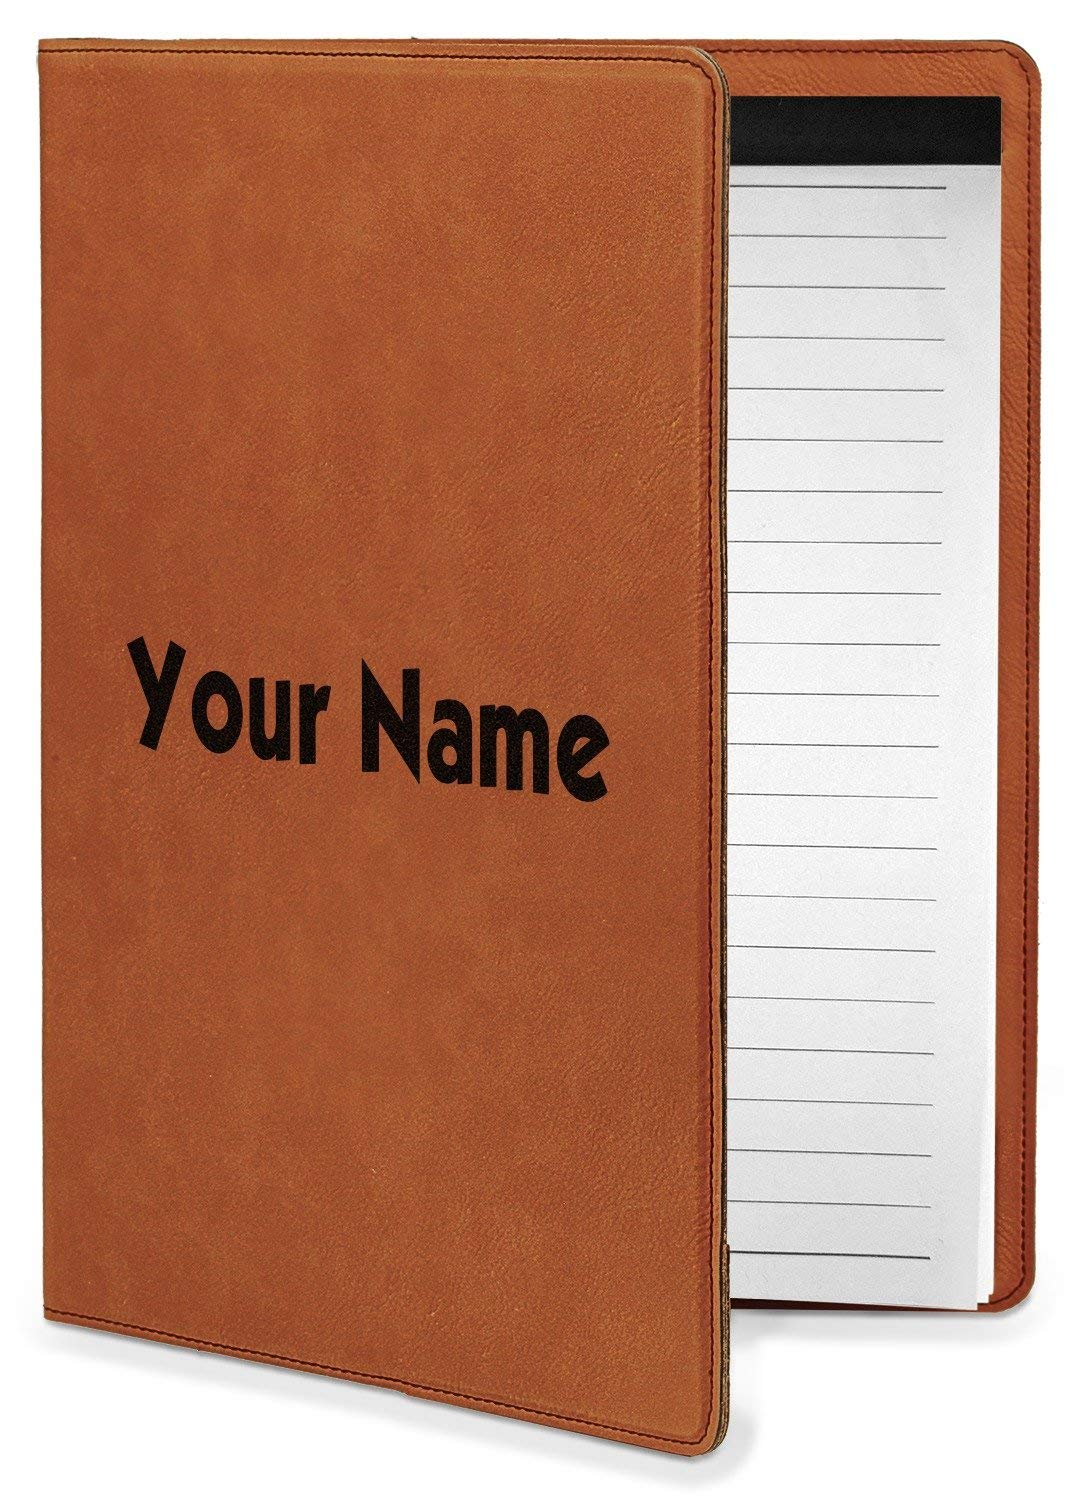 Block Name Leatherette Portfolio with Notepad - Small - Single Sided (Personalized)